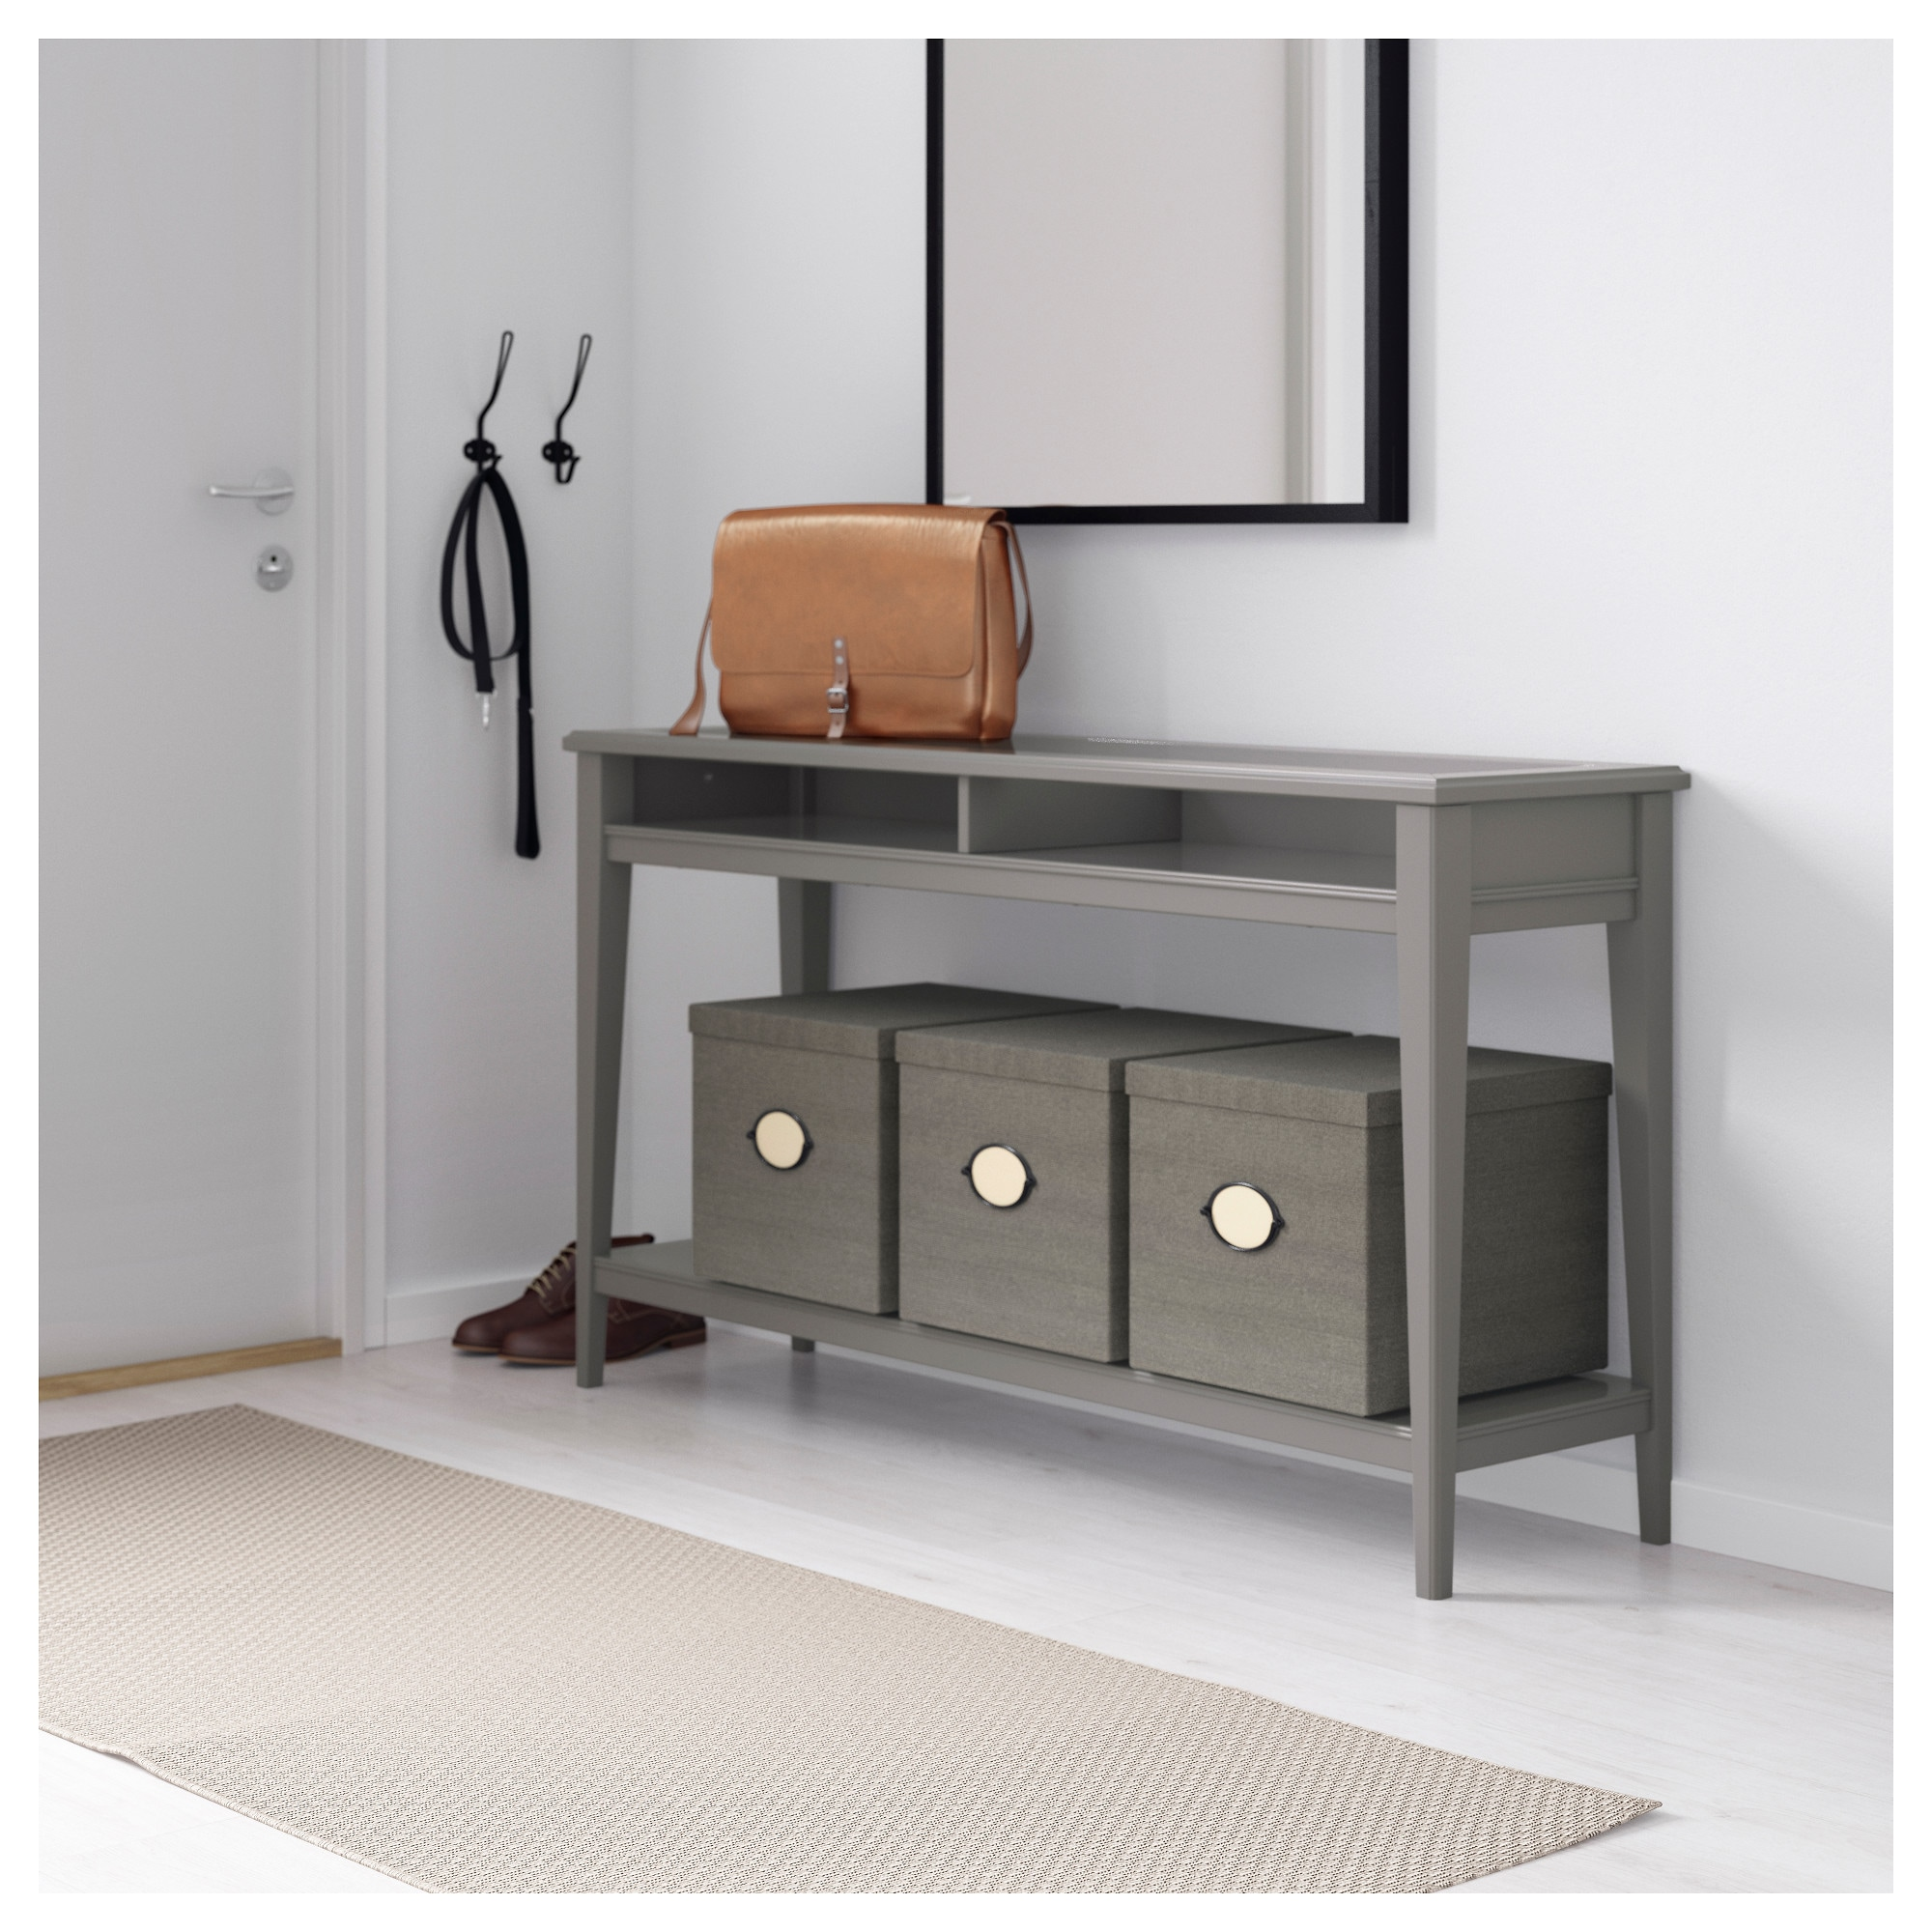 Superb LIATORP Console Table   Gray/glass   IKEA